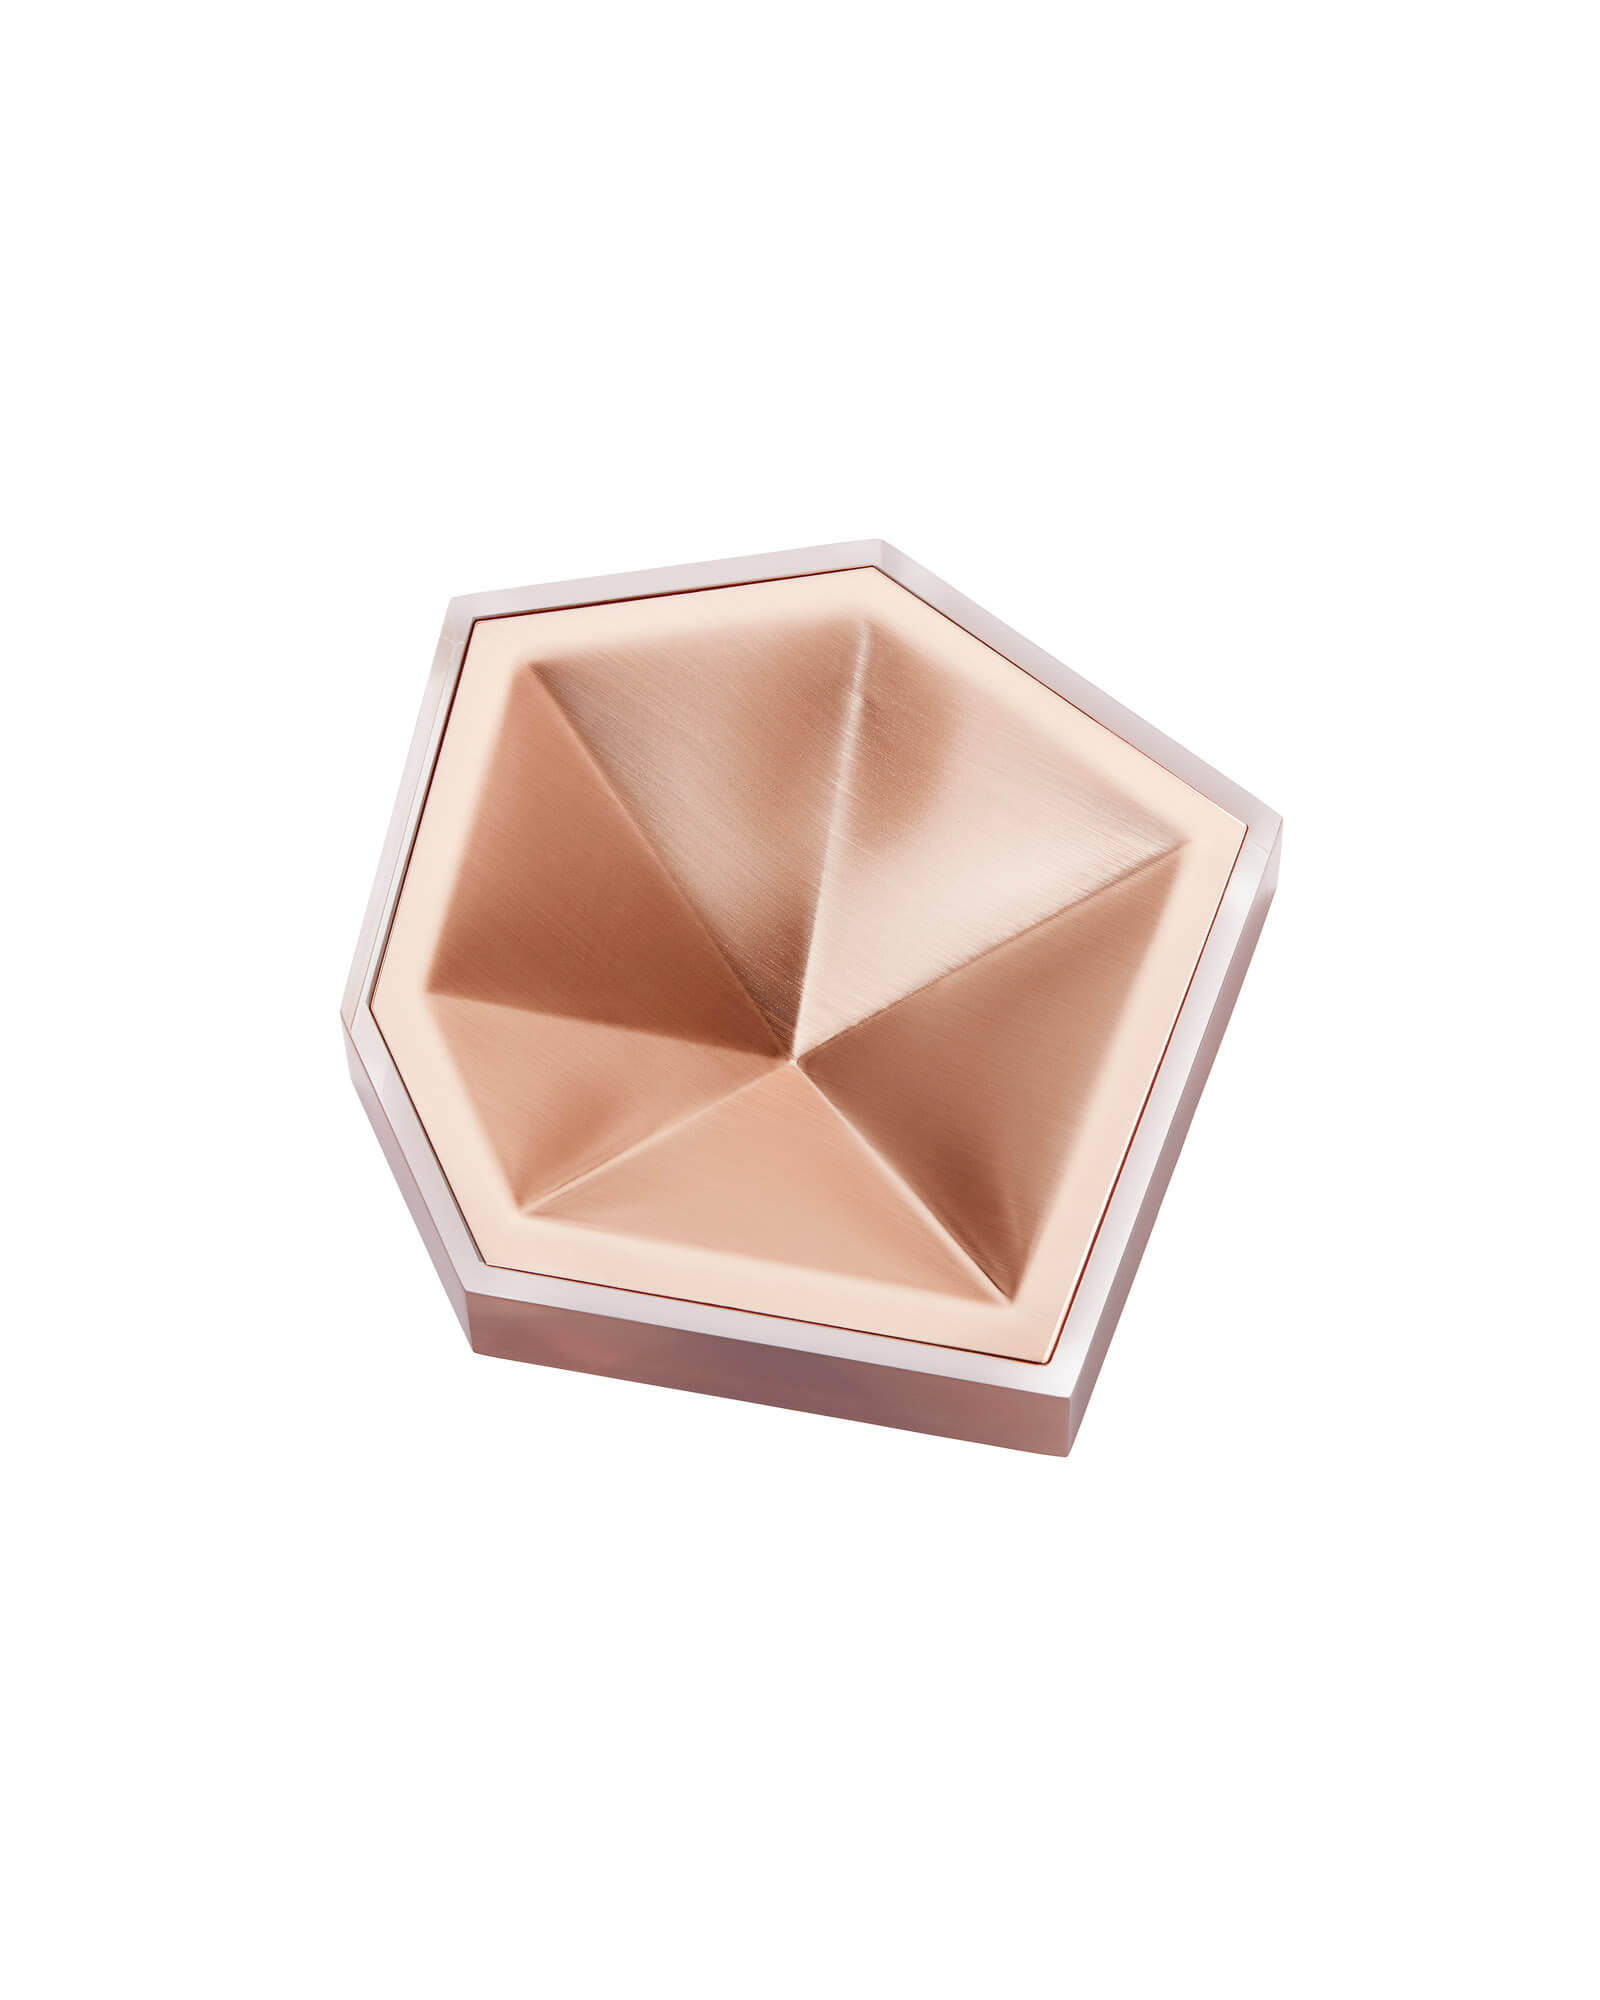 Faceted Ring Dish in Rose Gold